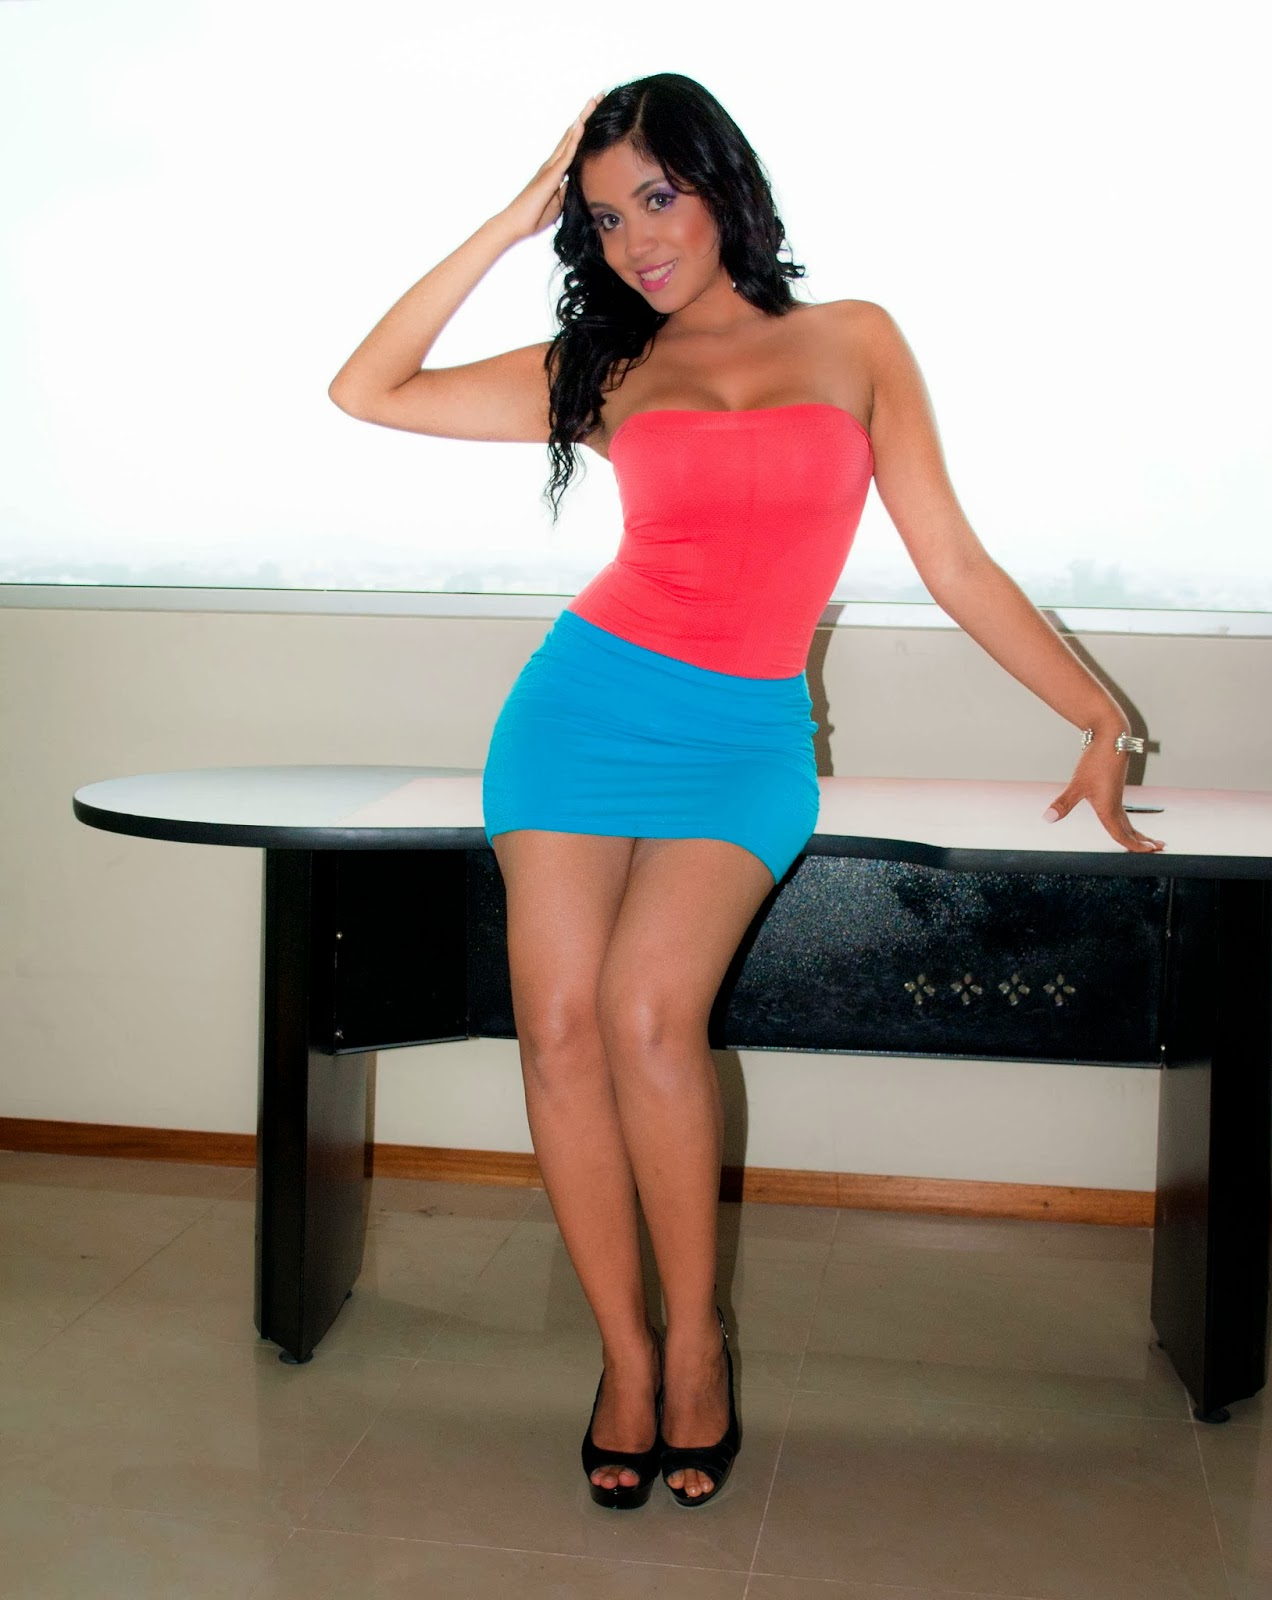 Medidas 106 63 108 for Modelos guayaquil